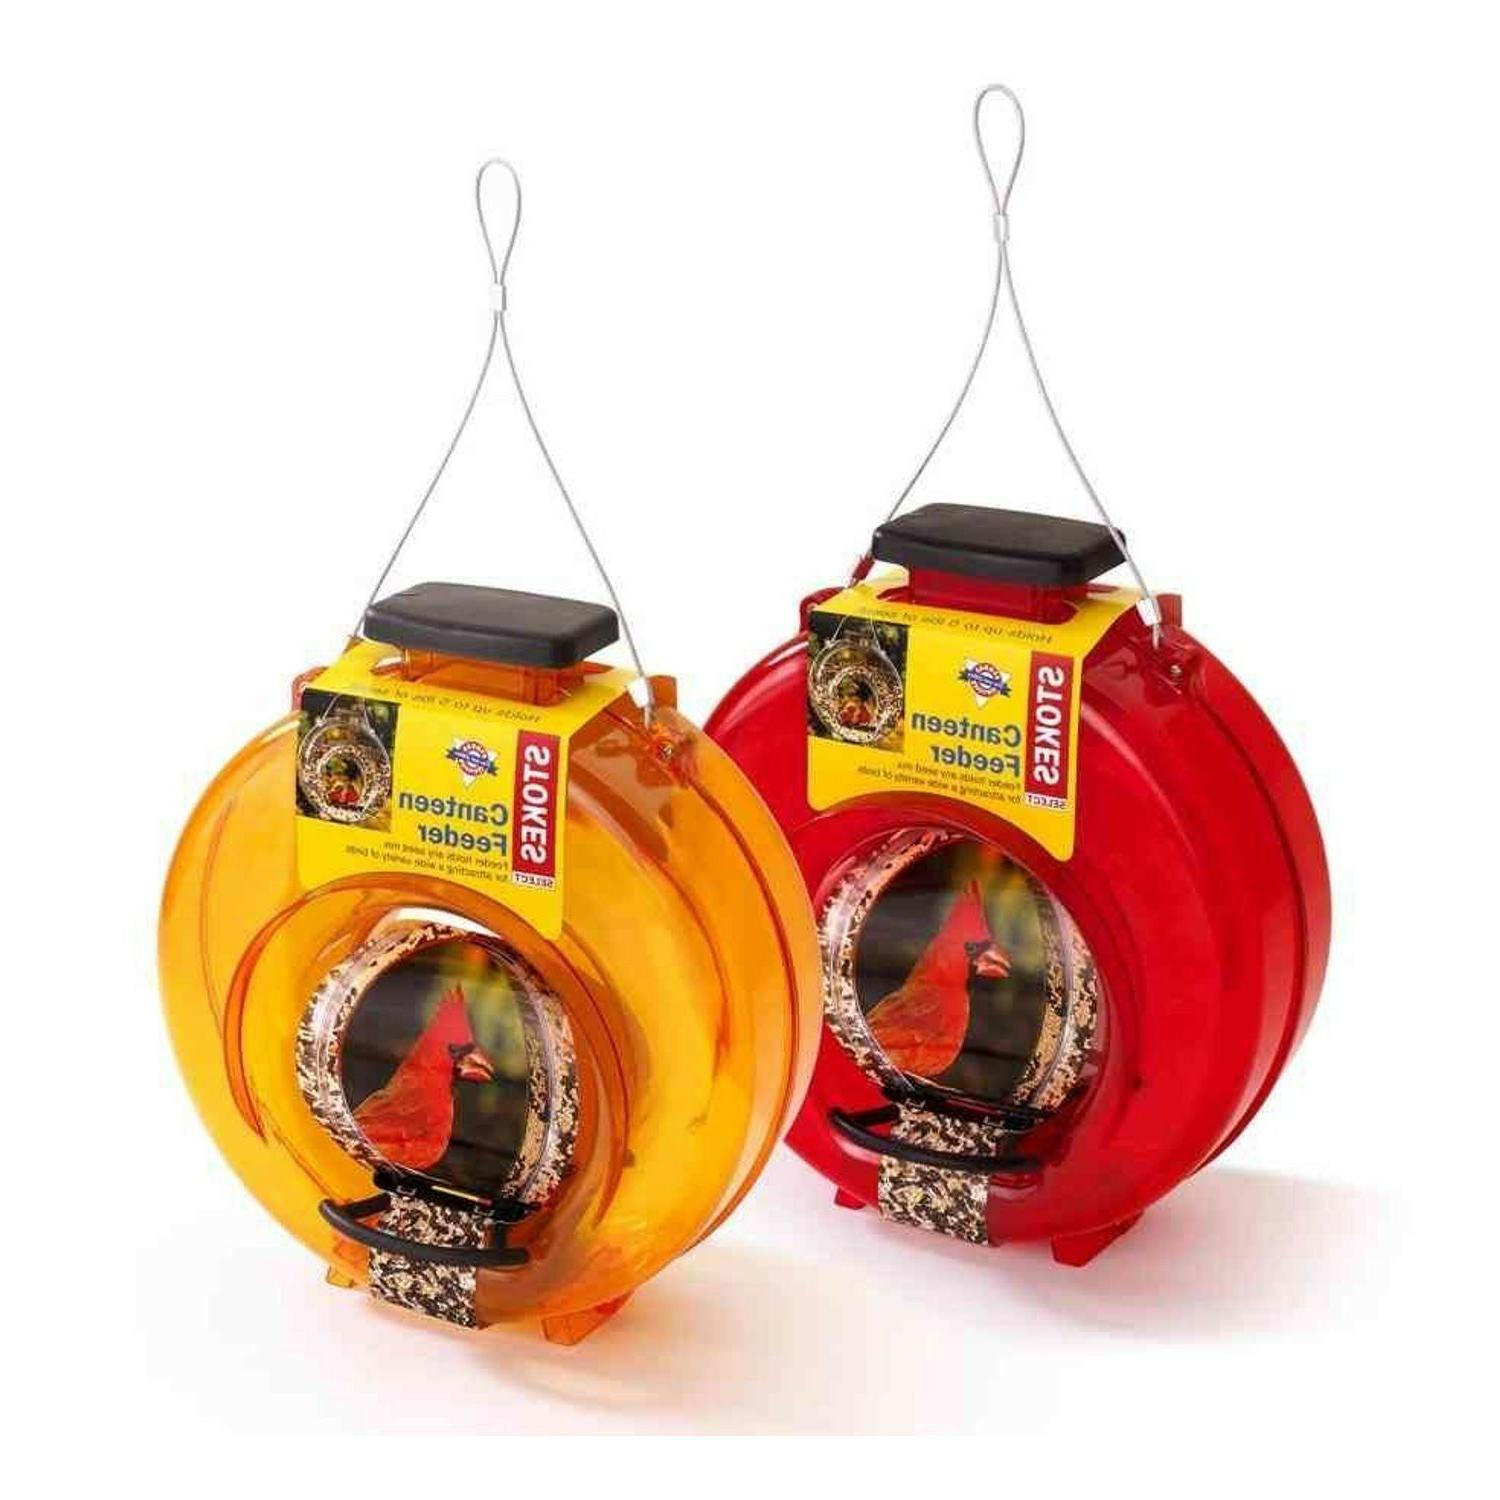 1 orange plastic canteen bird feeder